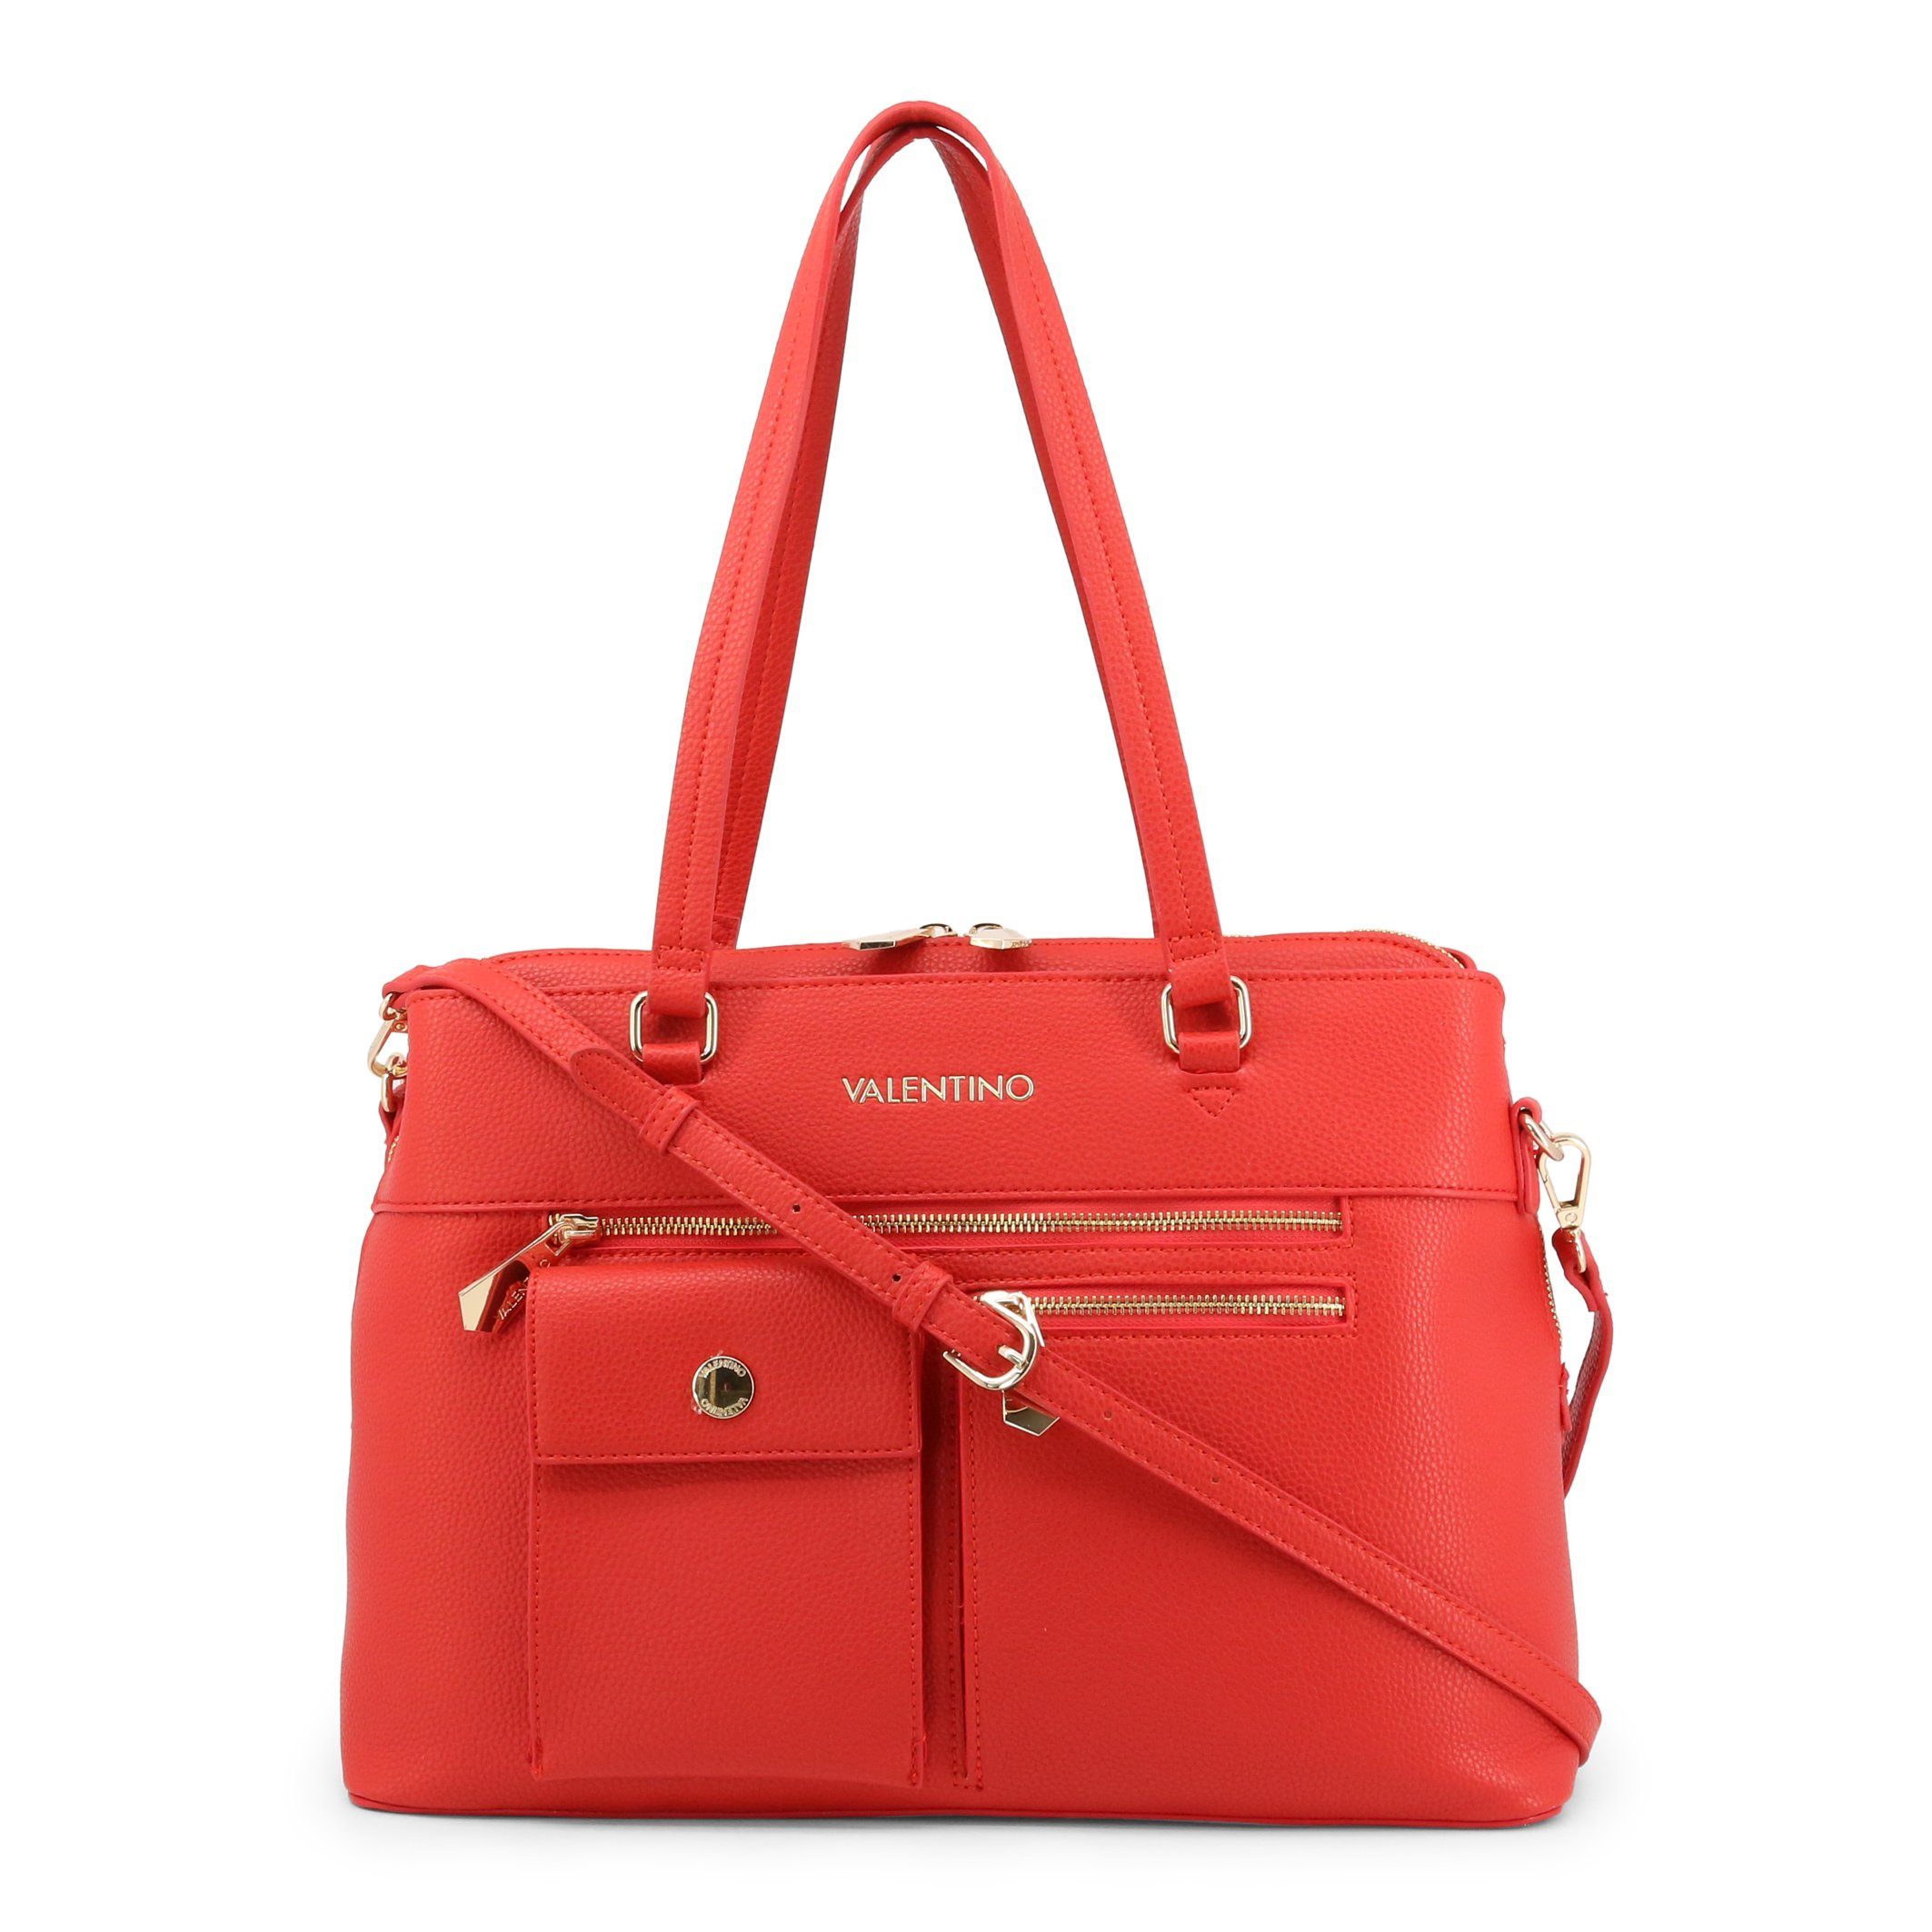 Valentino by Mario Valentino Women's Shoulder Bag Various Colours CASPER-VBS3XL05 - red NOSIZE